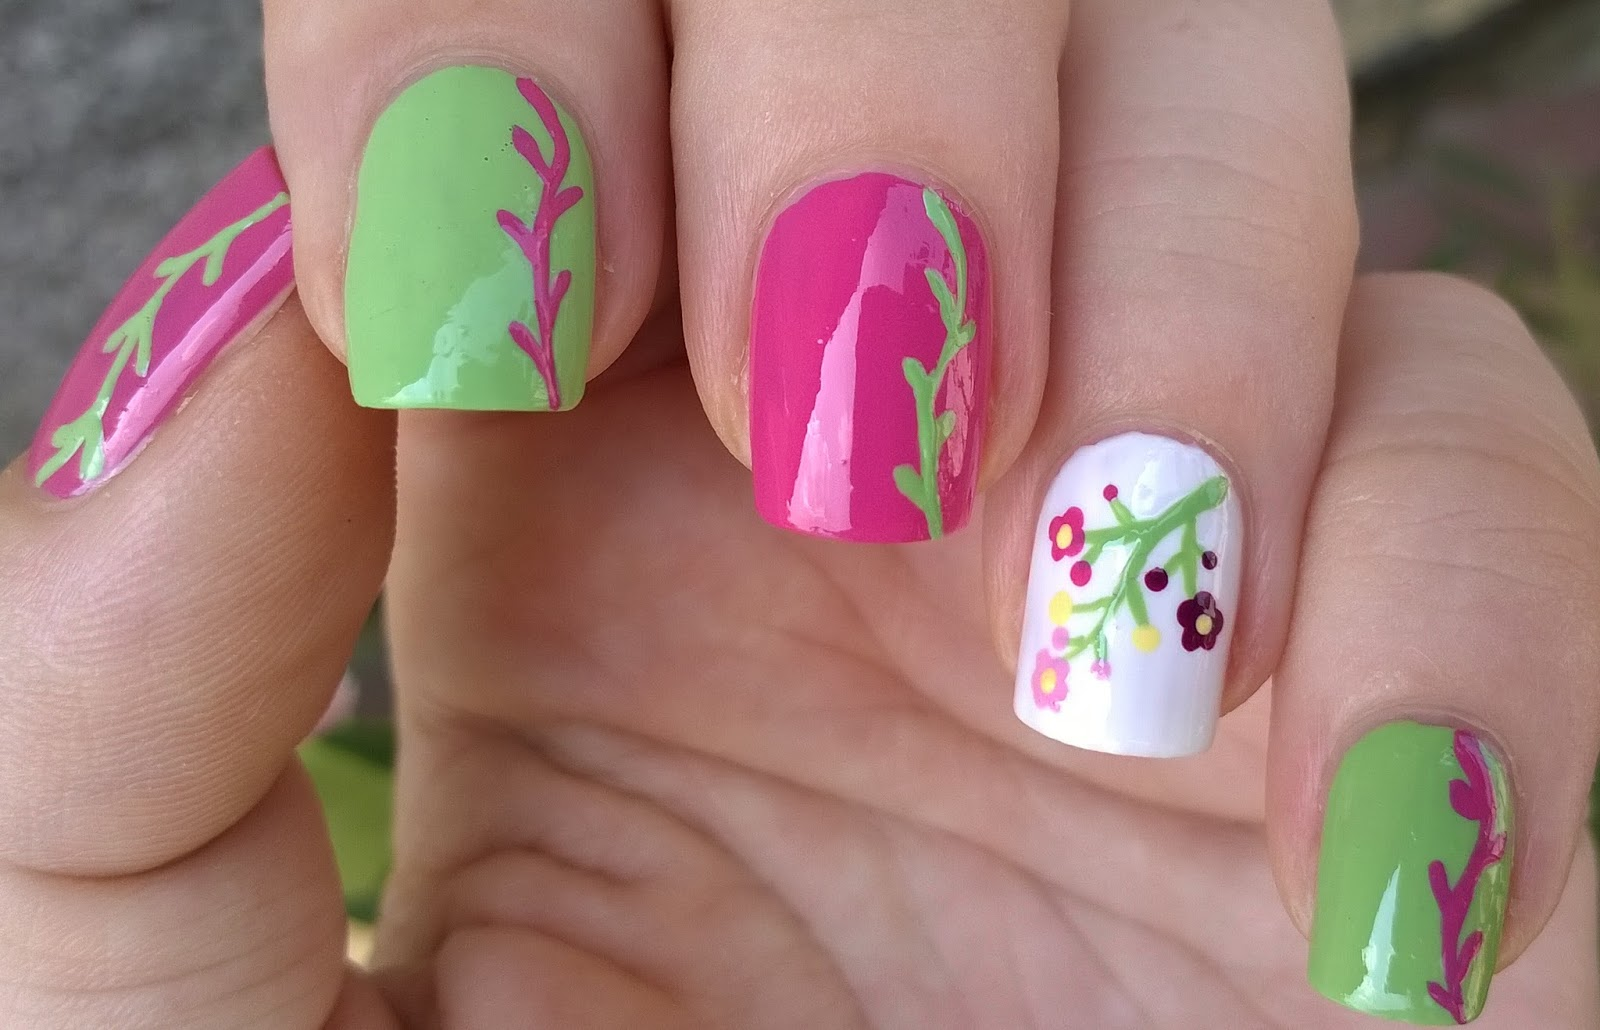 Life world women nail art brush designs floral nails in pink nail art brush designs floral nails in pink green white prinsesfo Gallery